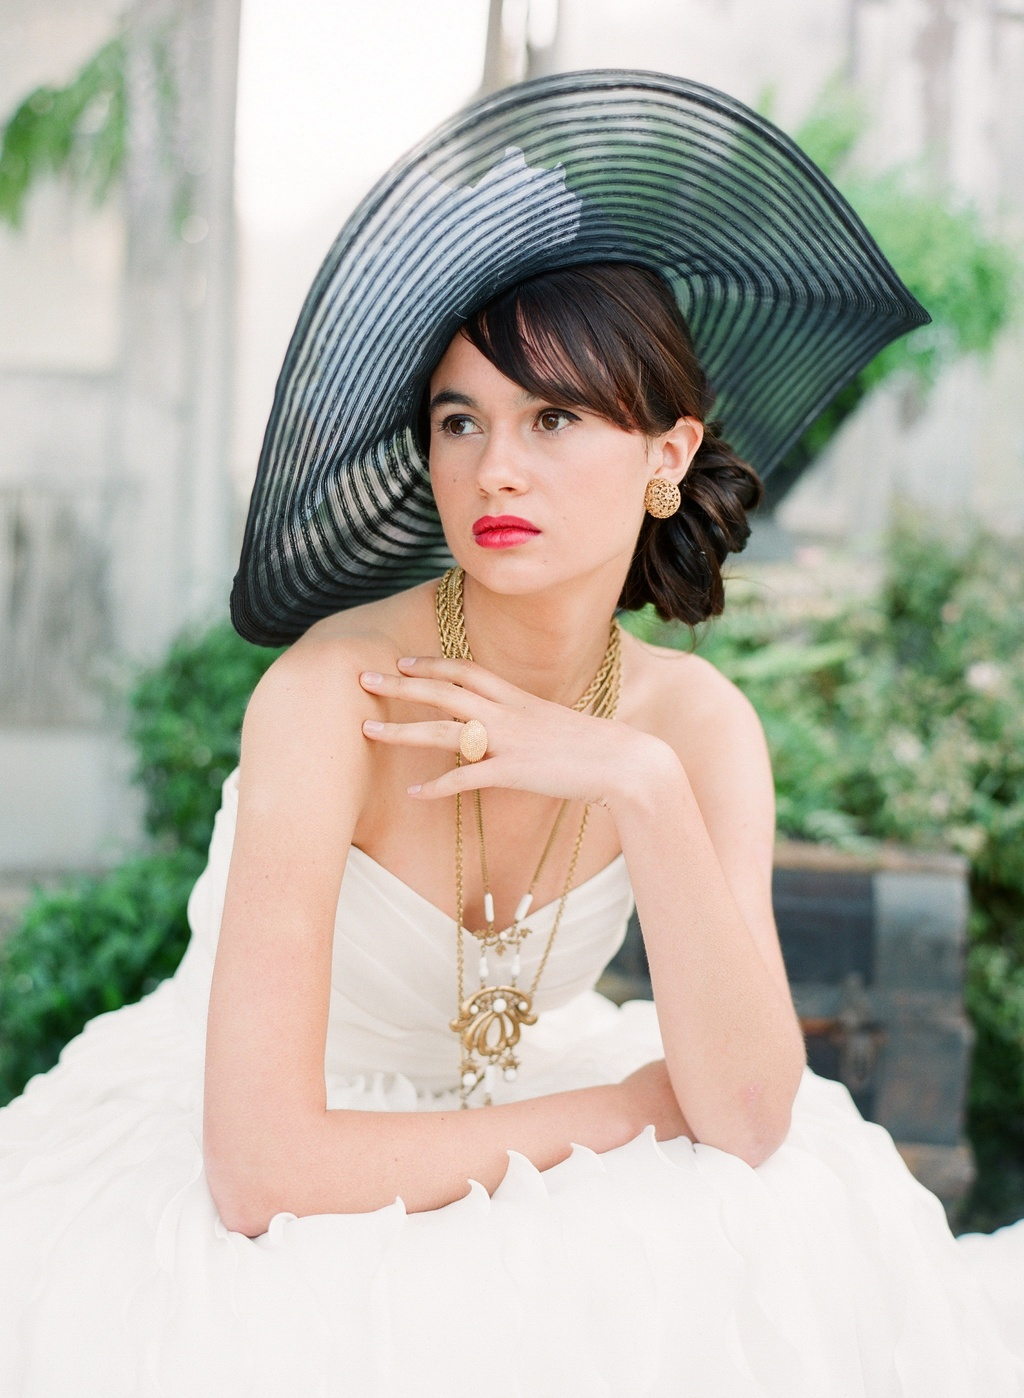 Styled-wedding-beaux-arts-tea-time-monique-lhuillier-santa-barbara-chic-bride-wedding%20dress-bridal%20gown-hat55.full